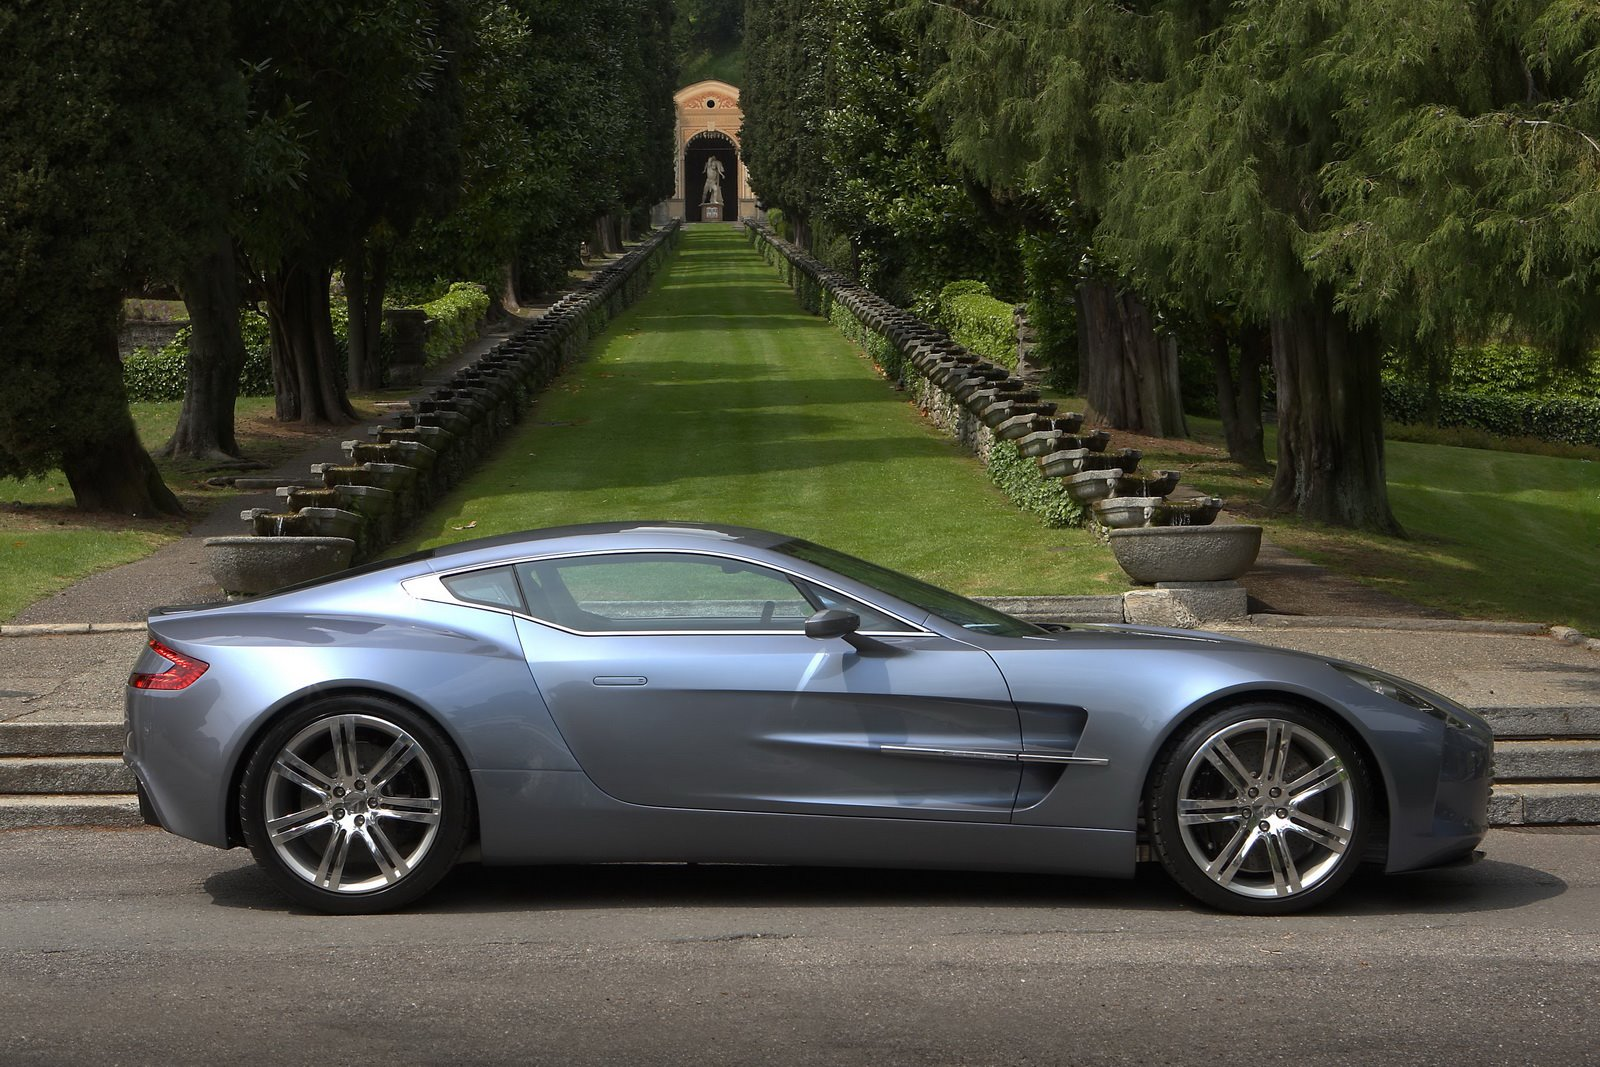 Aston Martin One 77 Wallpaper 1600x1067